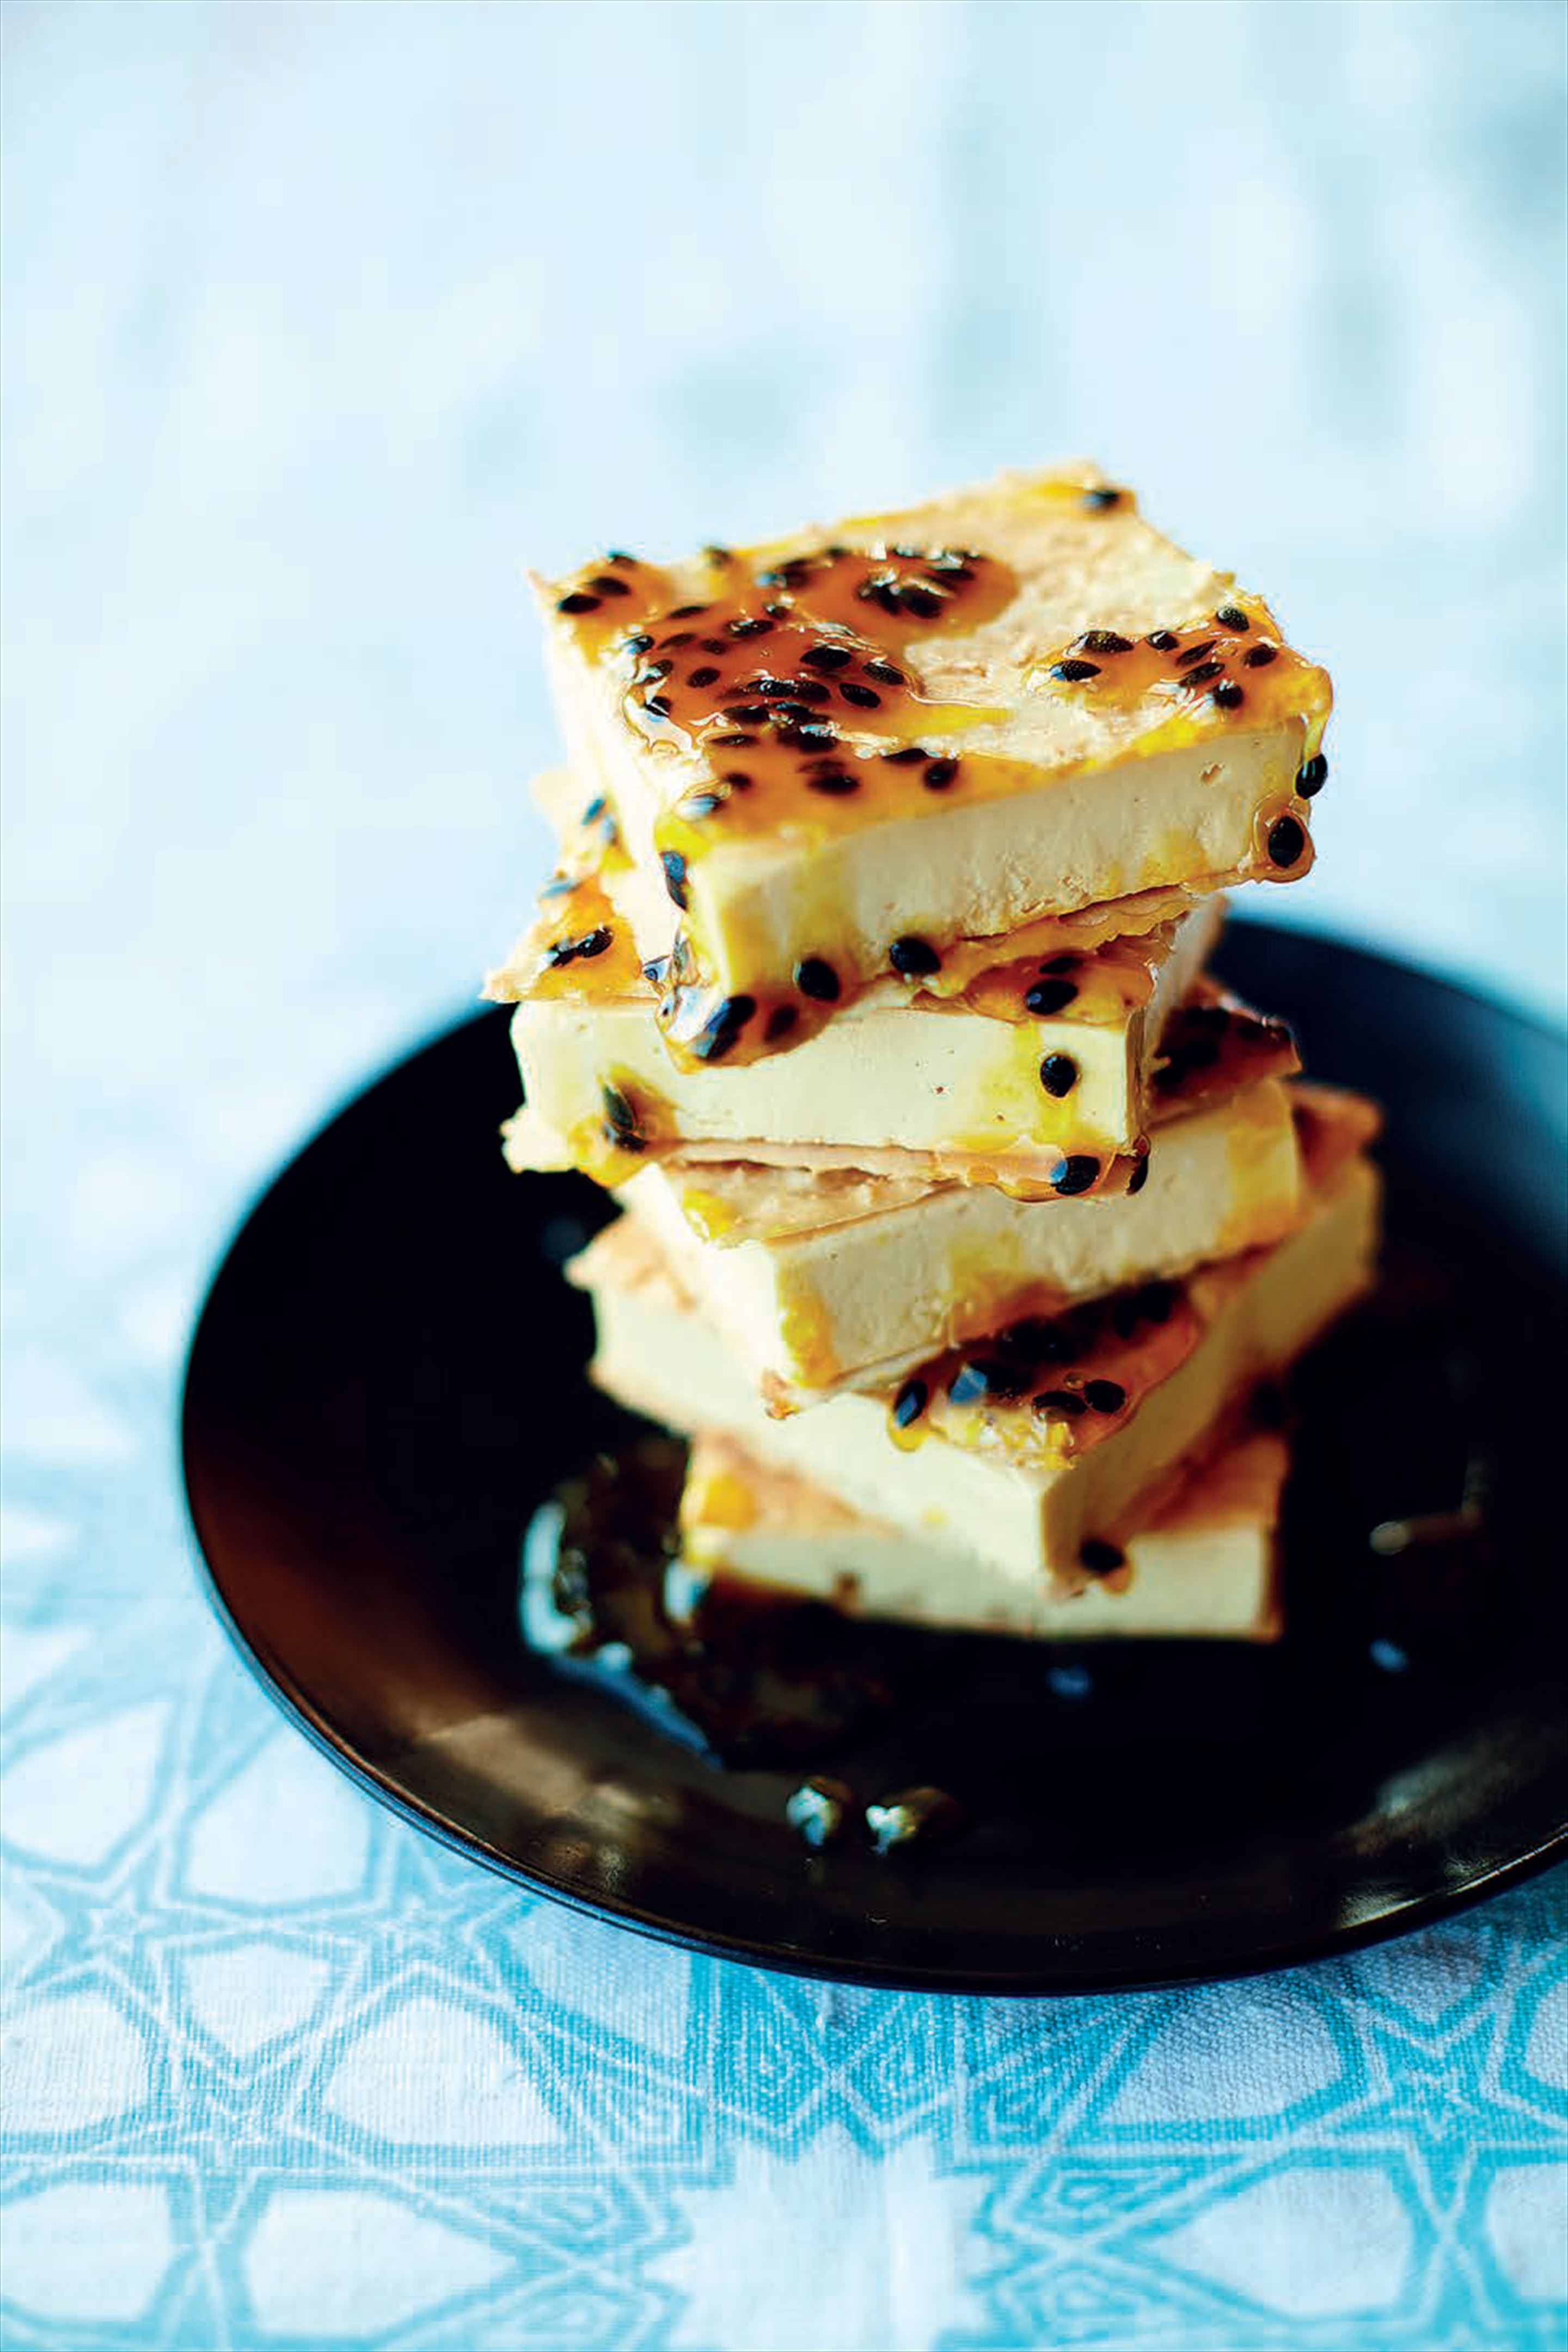 Passion fruit and toasted coconut ice-cream sandwich